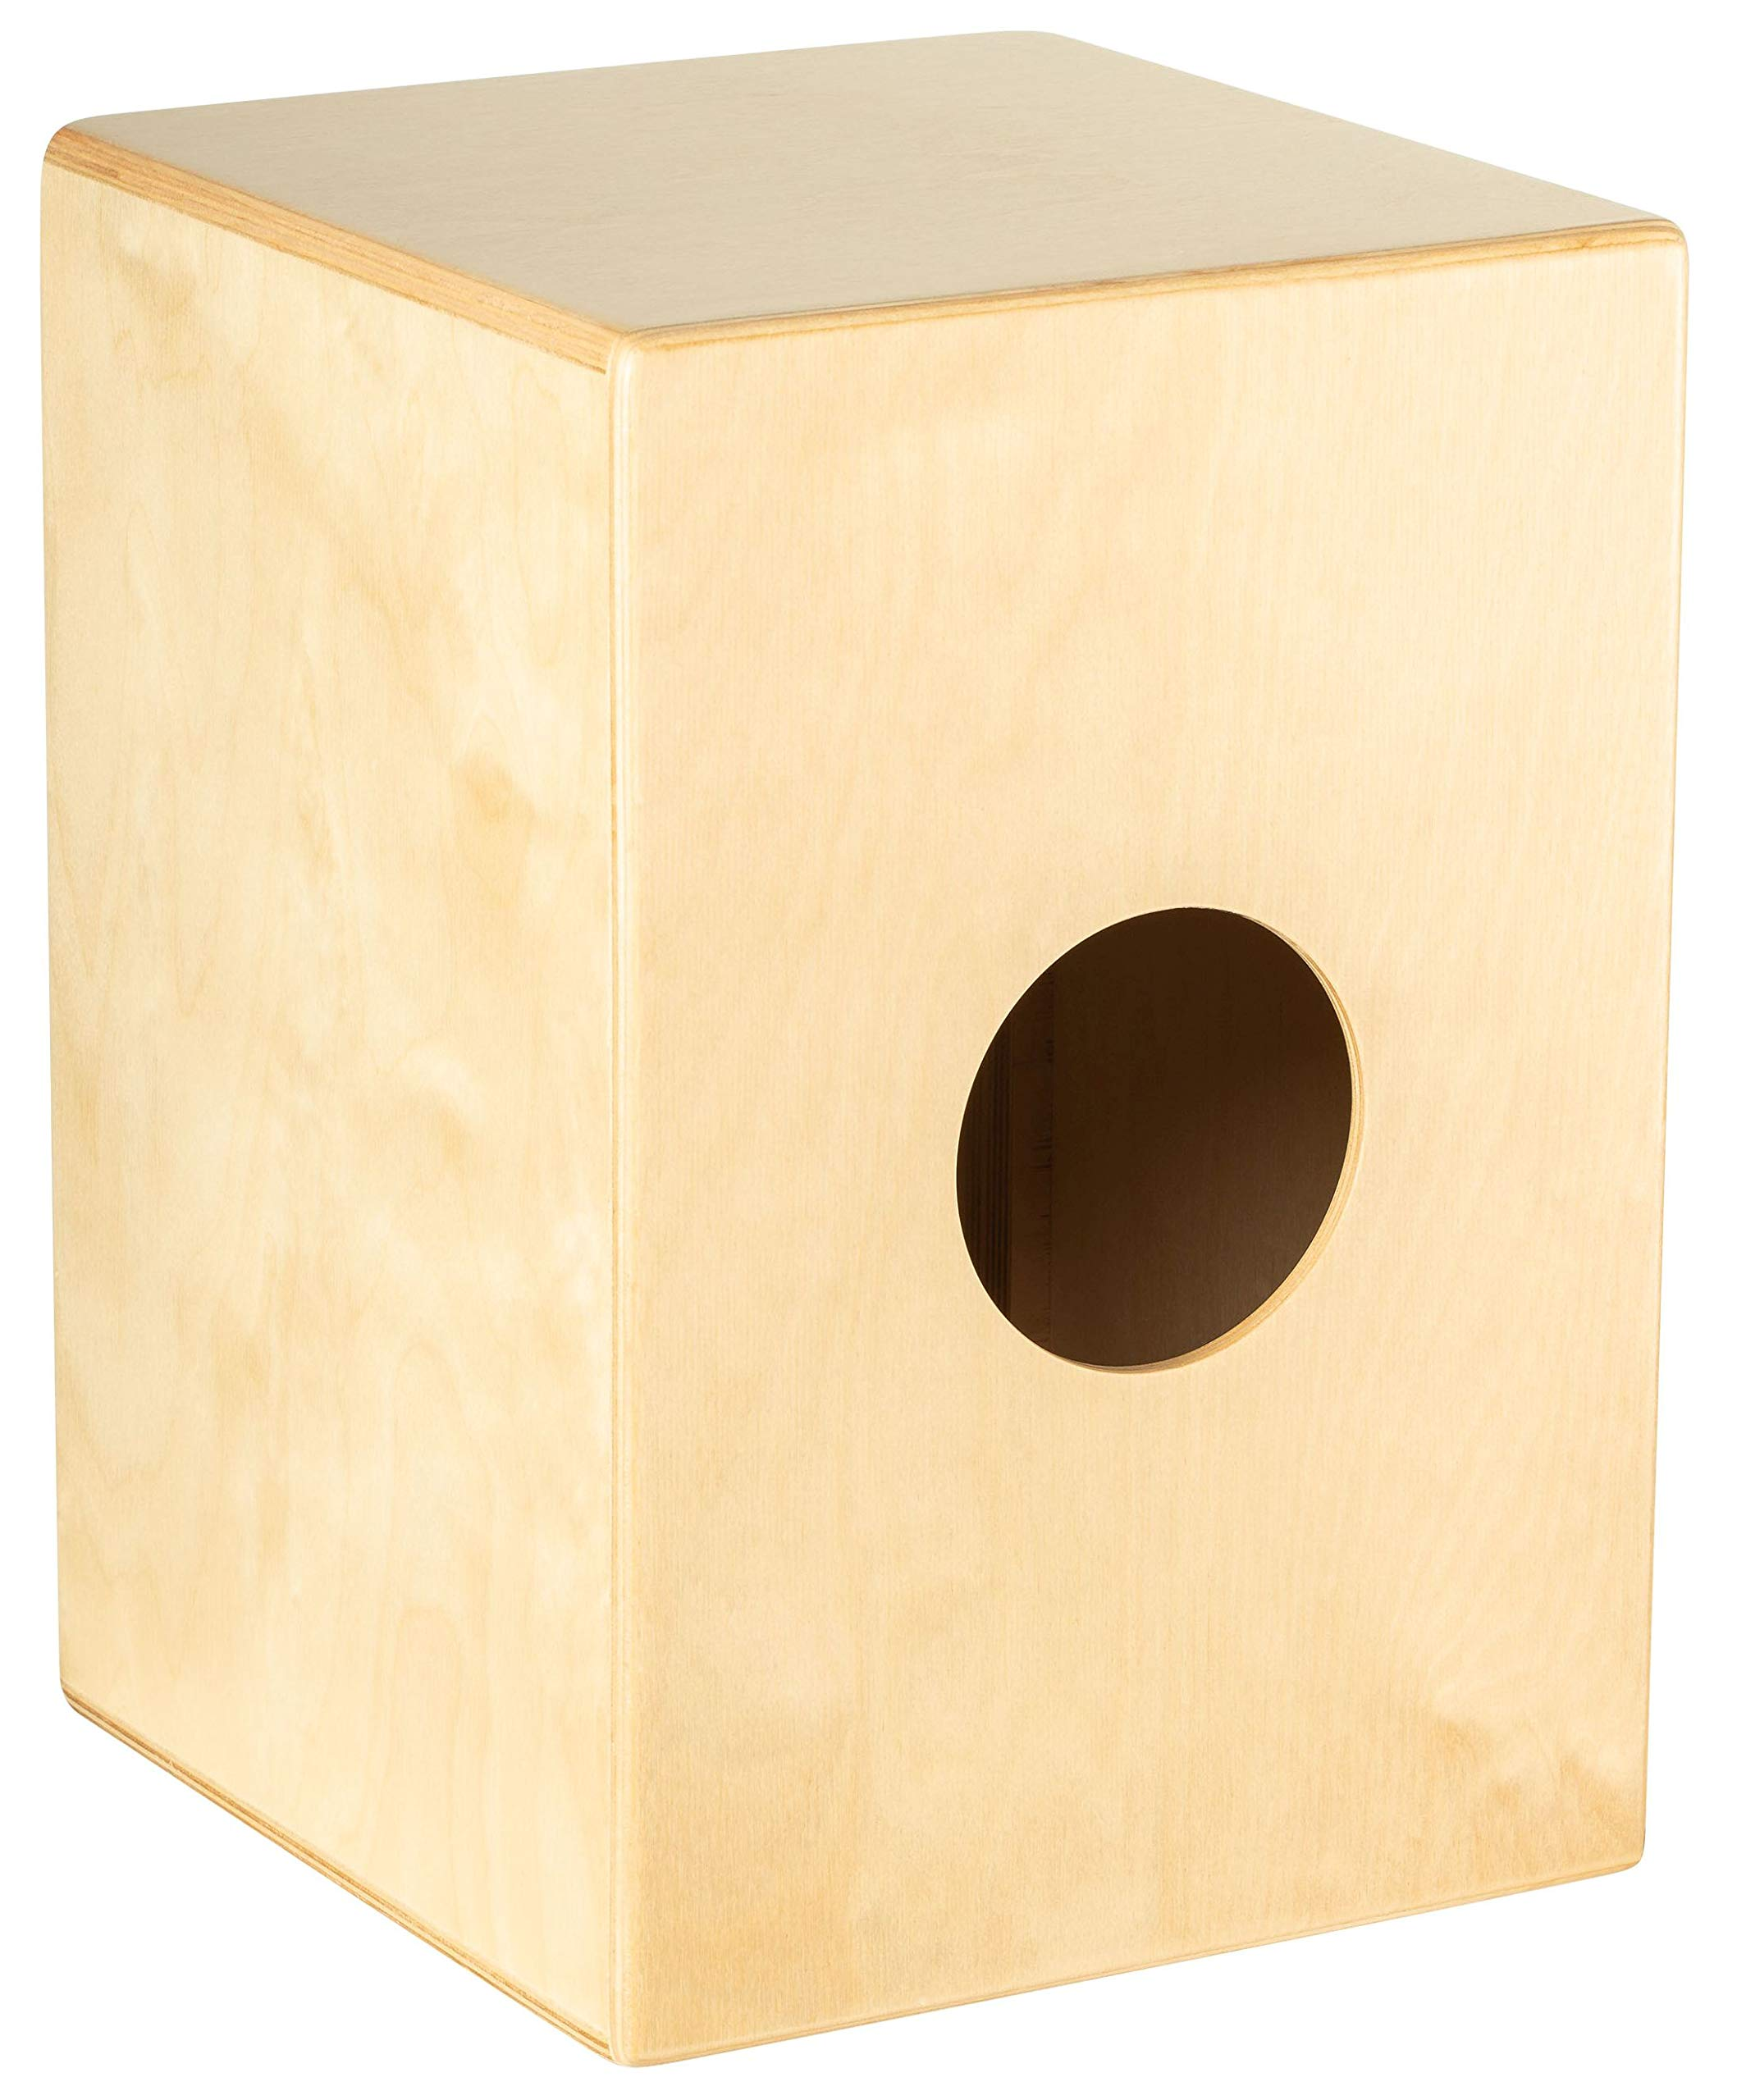 Meinl Cajon Box Drum with Internal Snares - MADE IN EUROPE - Baltic Birch Wood, Compact Size, 2-YEAR WARRANTY (JC50B) by Meinl Percussion (Image #2)